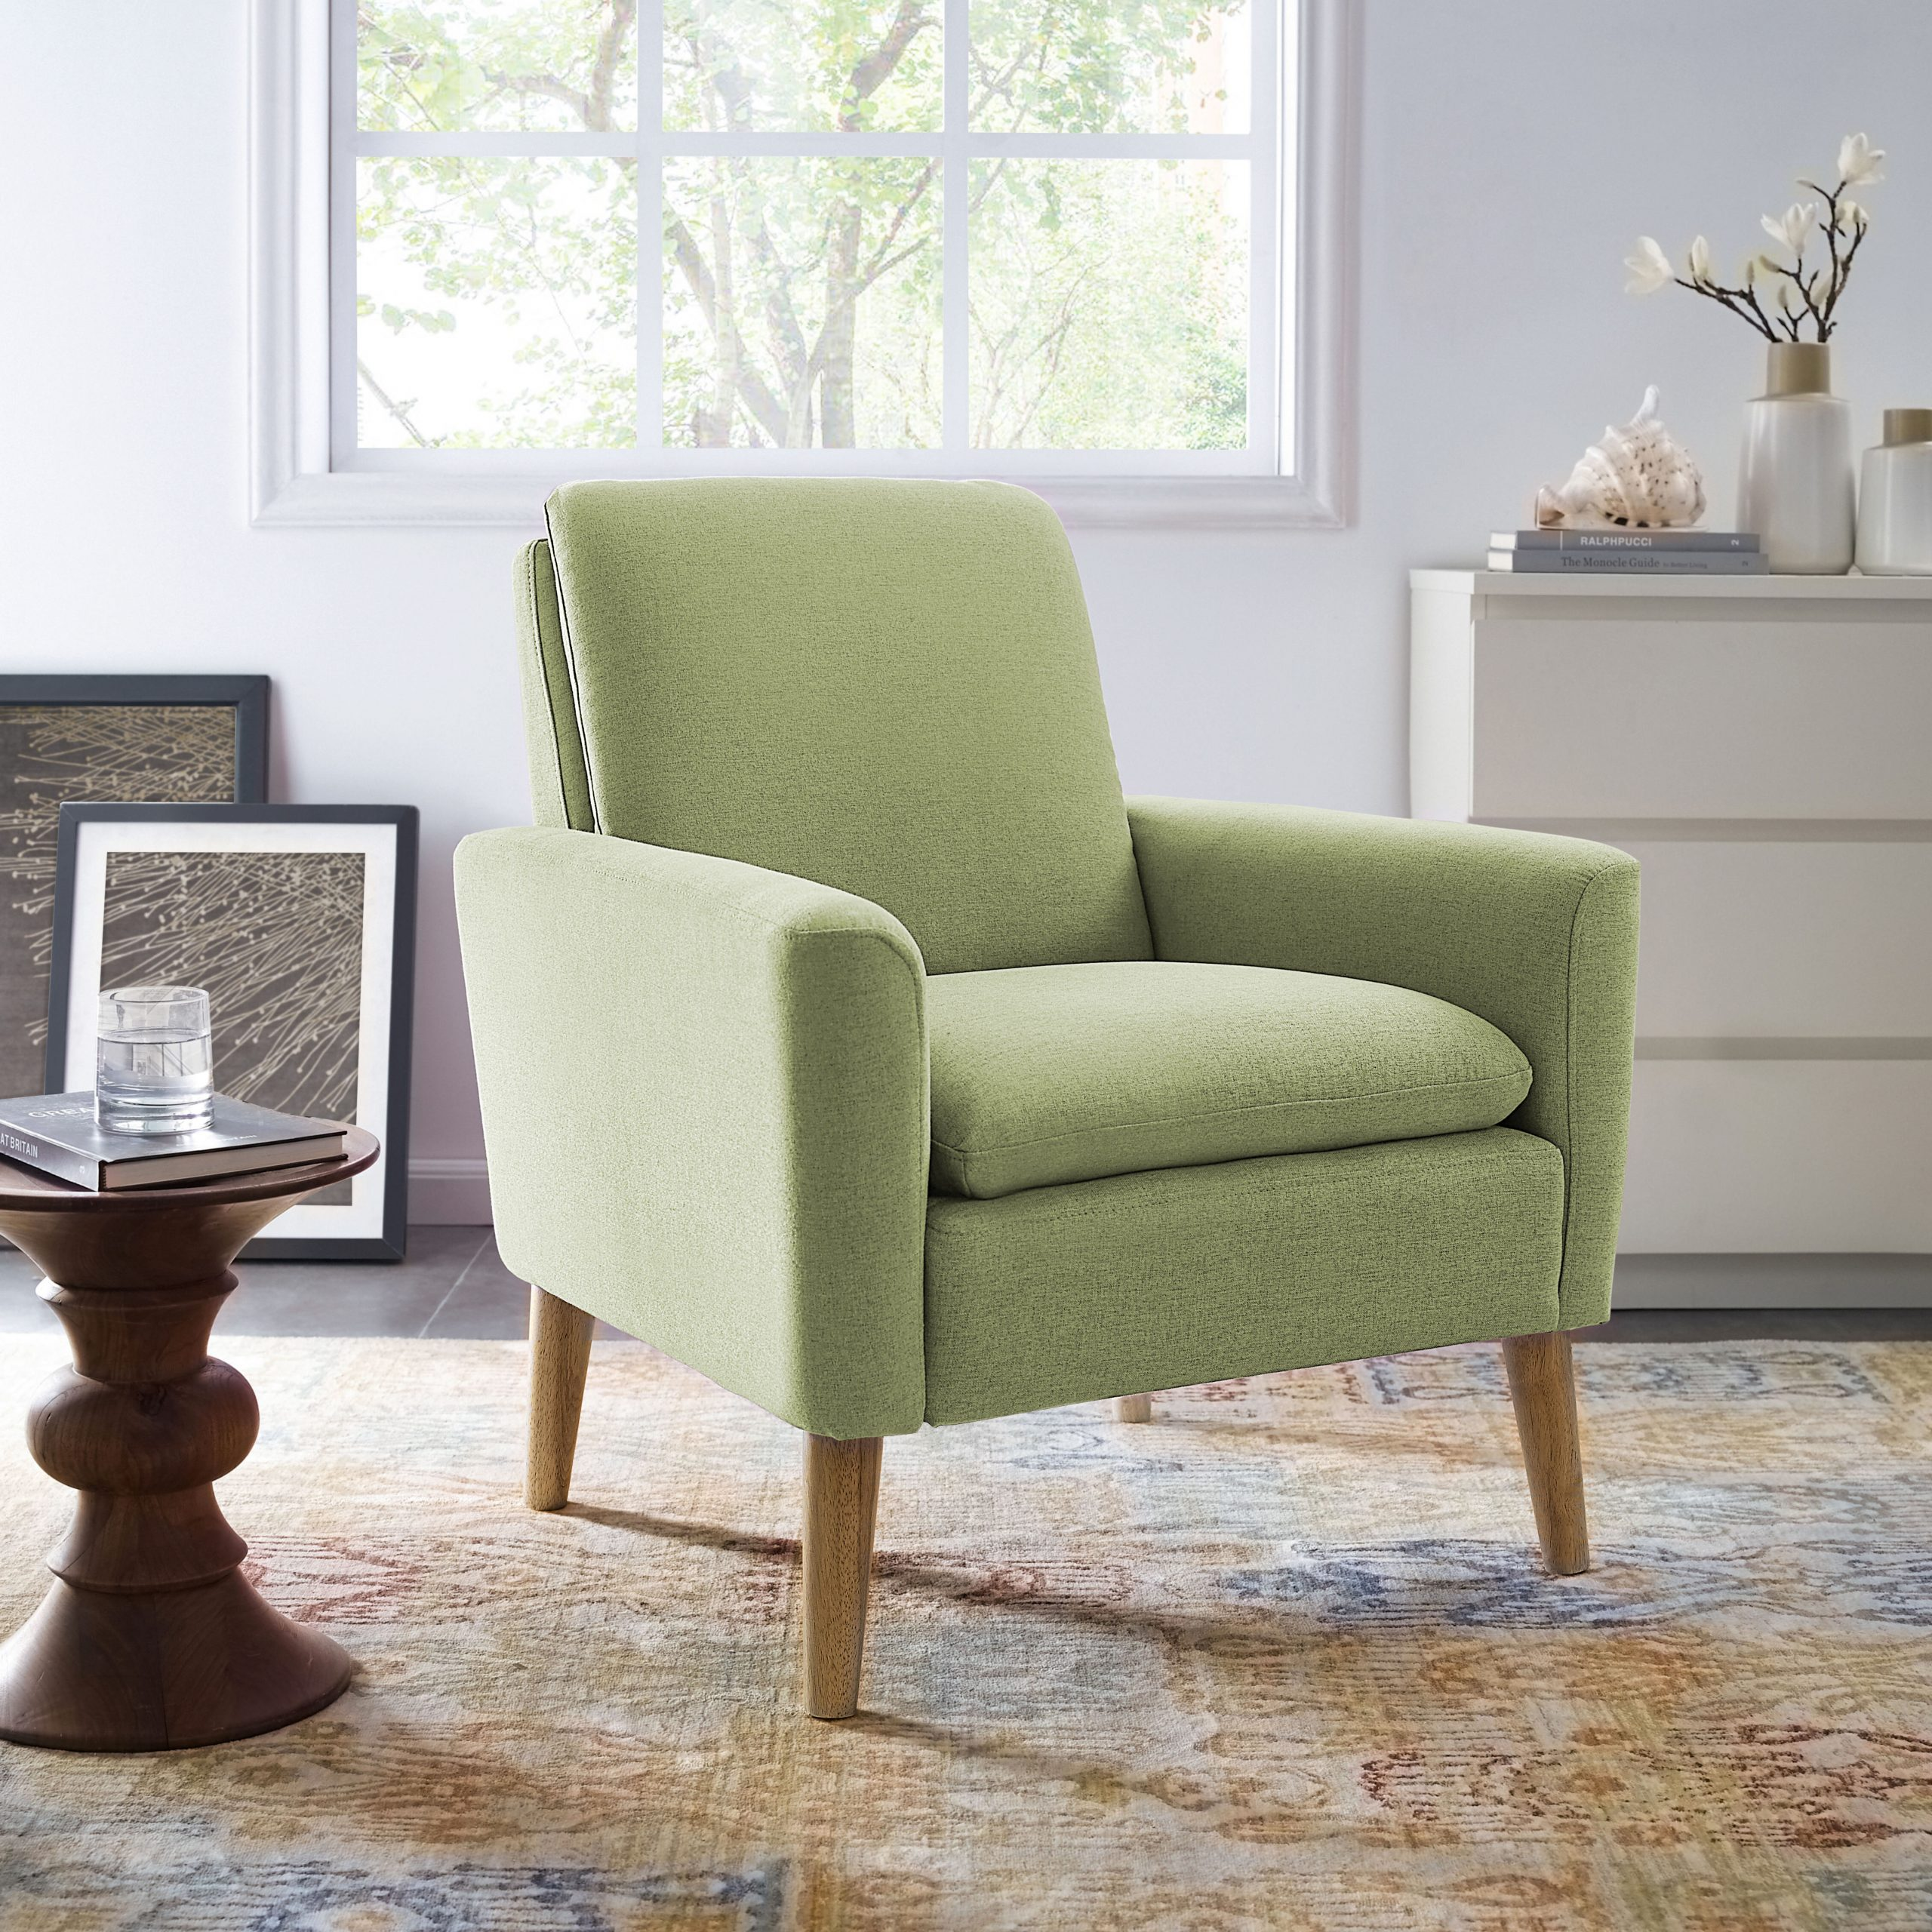 Kenley Armchair With Regard To Famous Hiltz Armchairs (View 7 of 20)